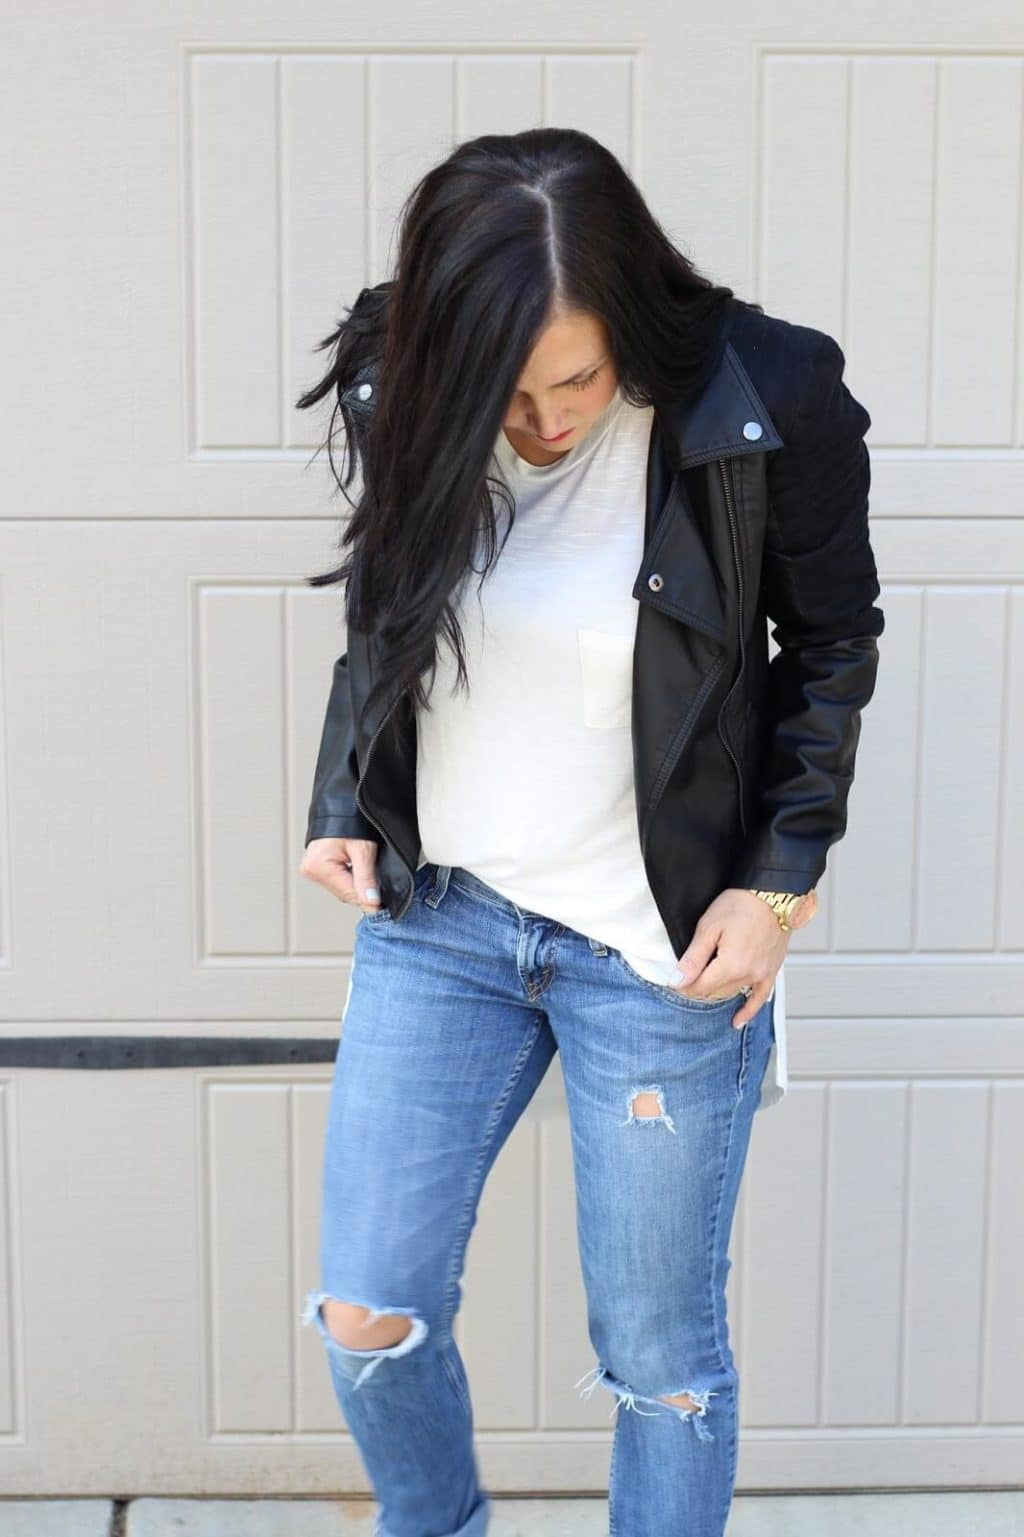 Leather moto jacket, distressed jeans